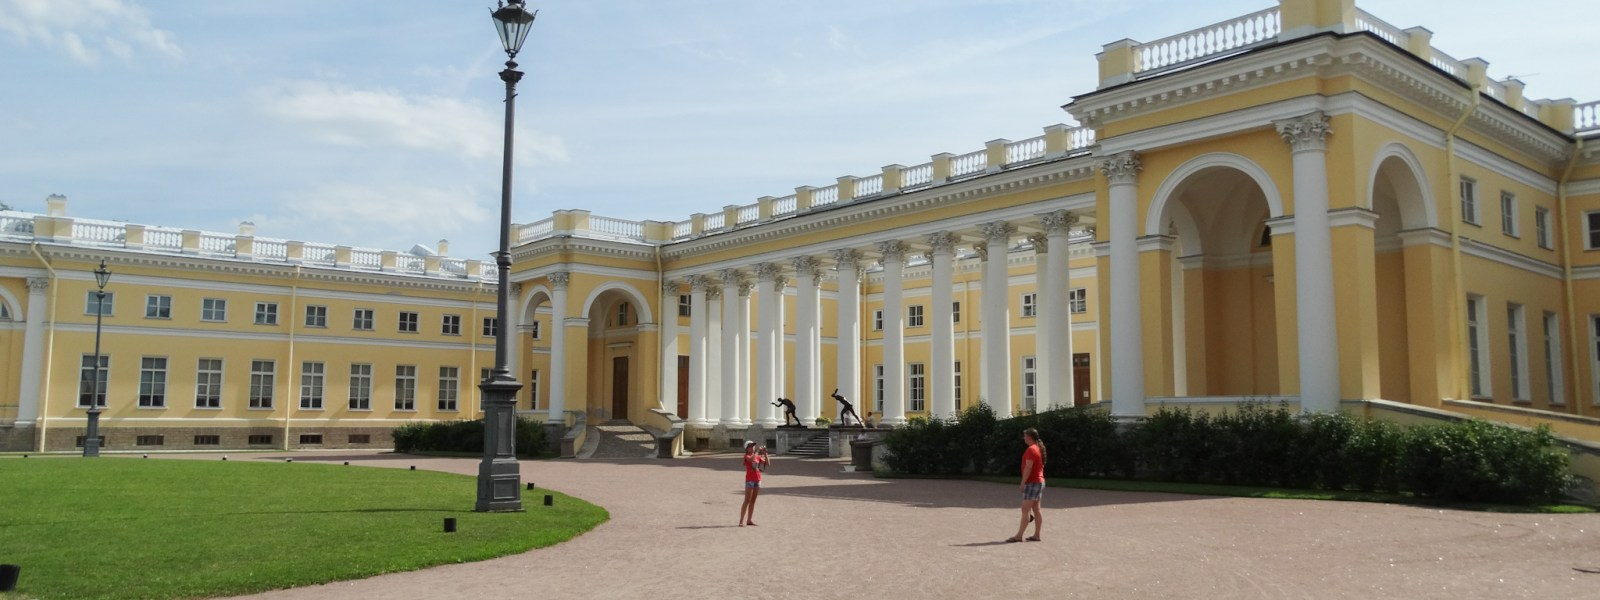 The Alexander Palace: Romanov palace near Saint Petersburg